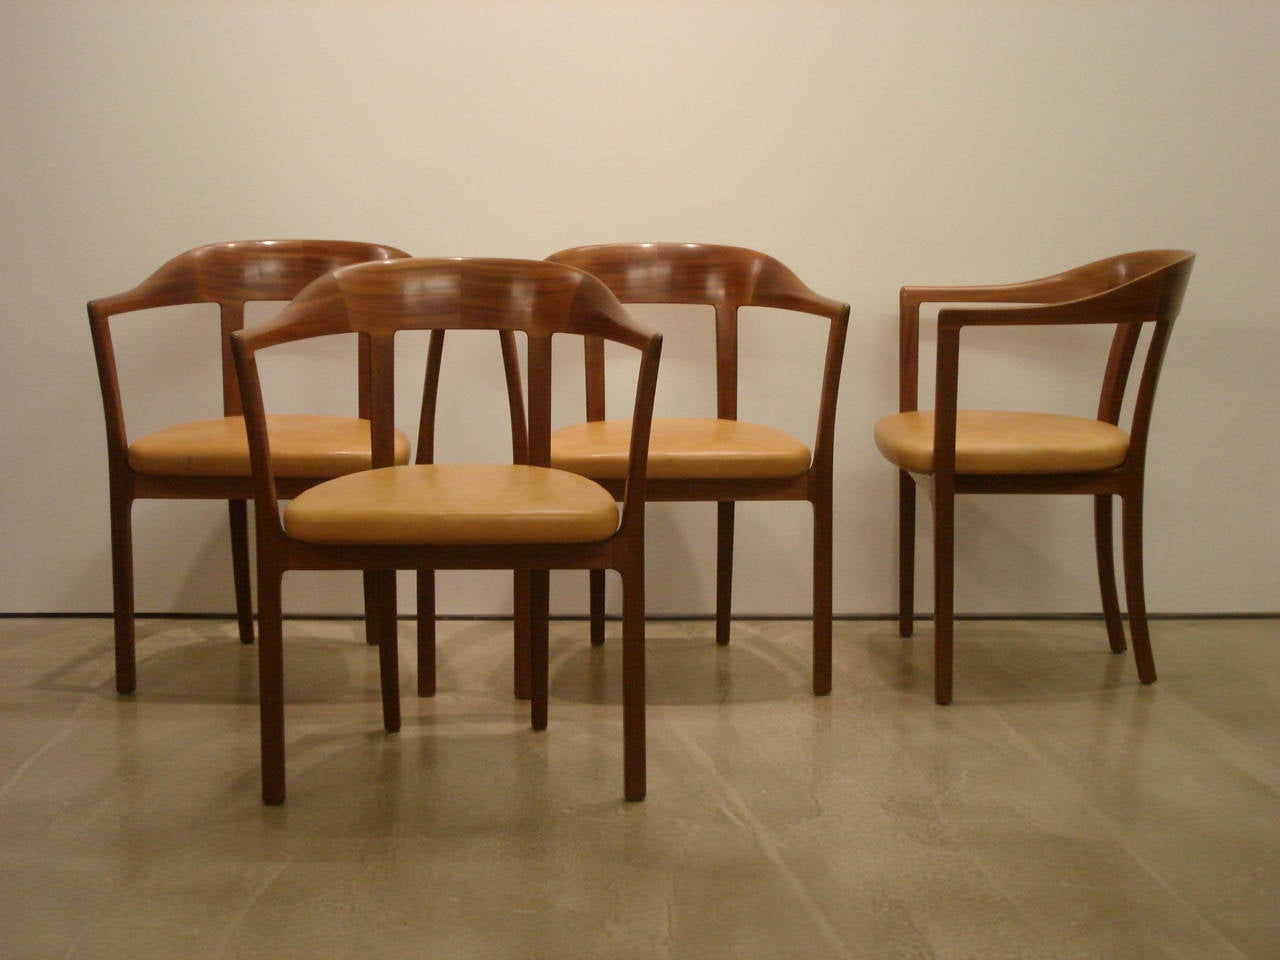 Ole Wanscher, Set of Four 1958 Armchairs in Mahogany and Original Leather Seats.   Made by master cabinetmaker A.J. Iversen, Copenhagen.  Designed in 1958; these chairs date to circa 1958. Mahogany with original natural leather upholstered